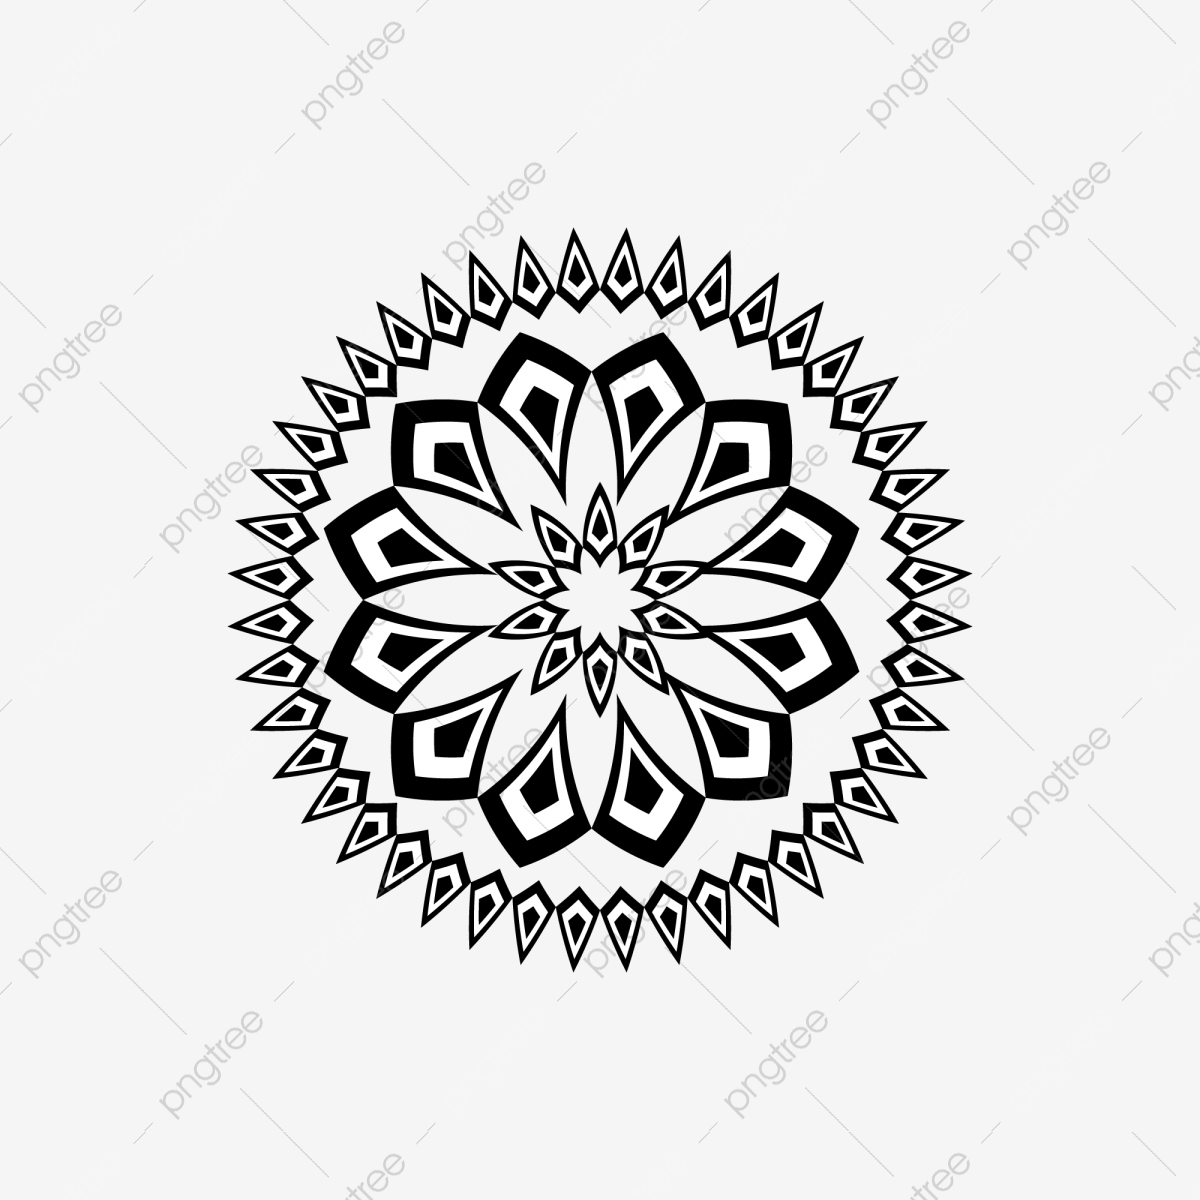 Simple Black Flower Design Leaf Print Sketch Png And Vector With Transparent Background For Free Download